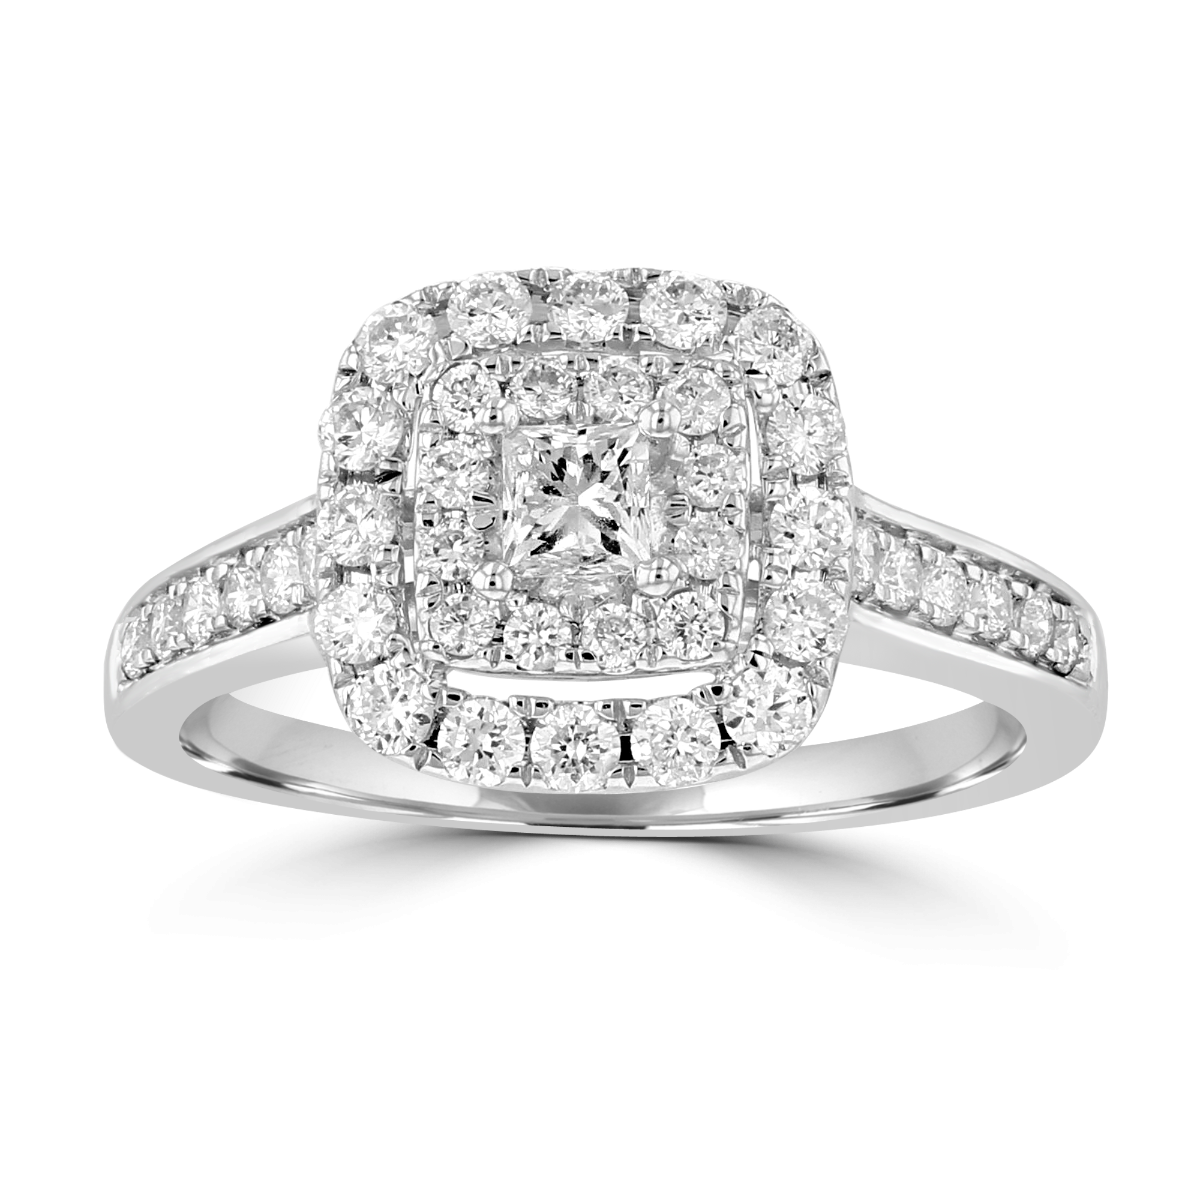 14KT White Gold 1.00 CTW Diamond Halo Bridal Set